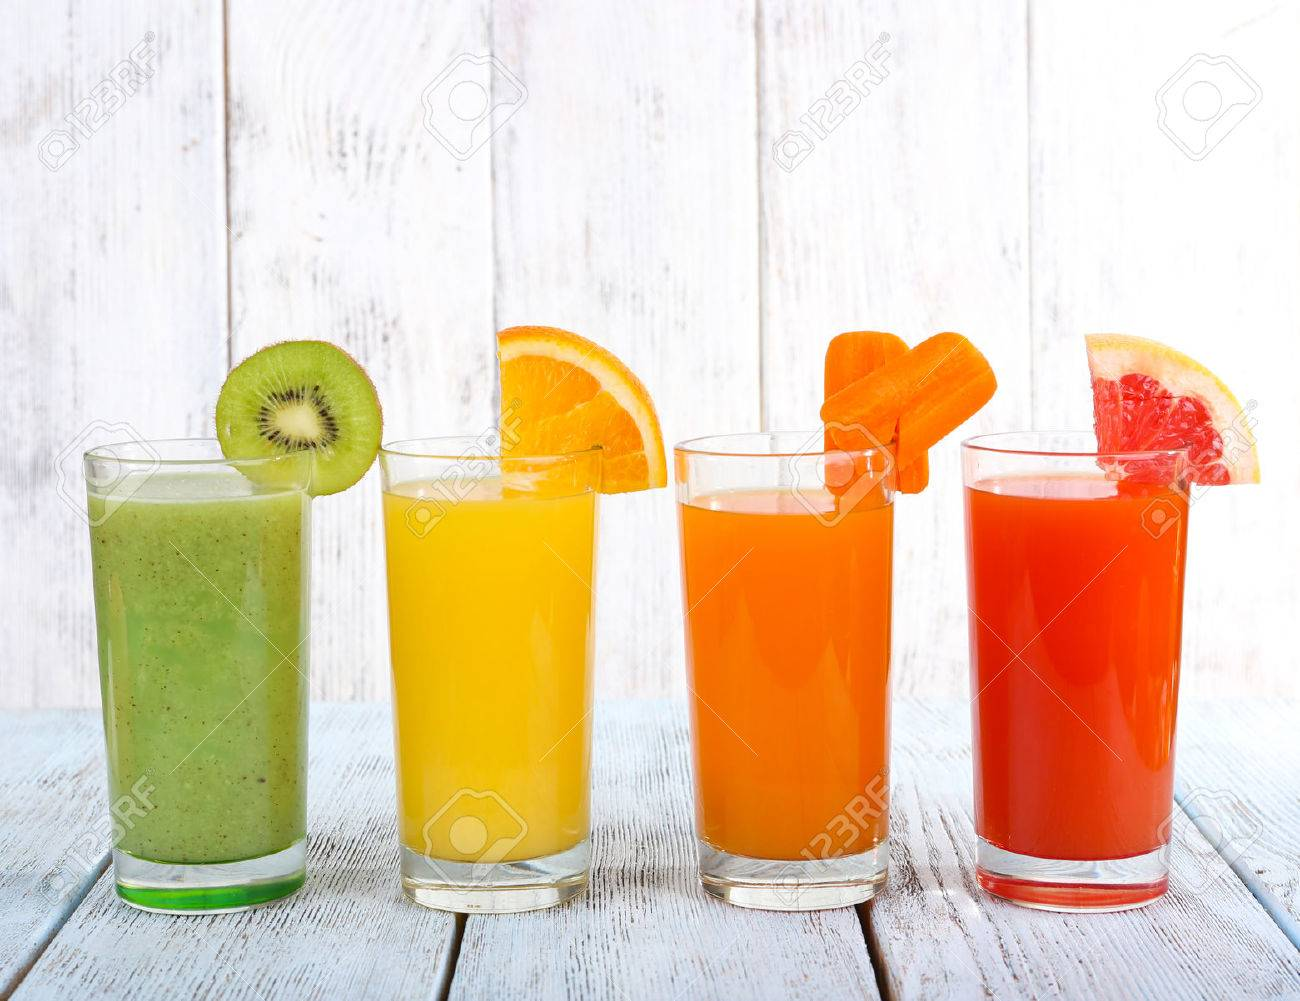 Images Of Fresh Fruit Juice